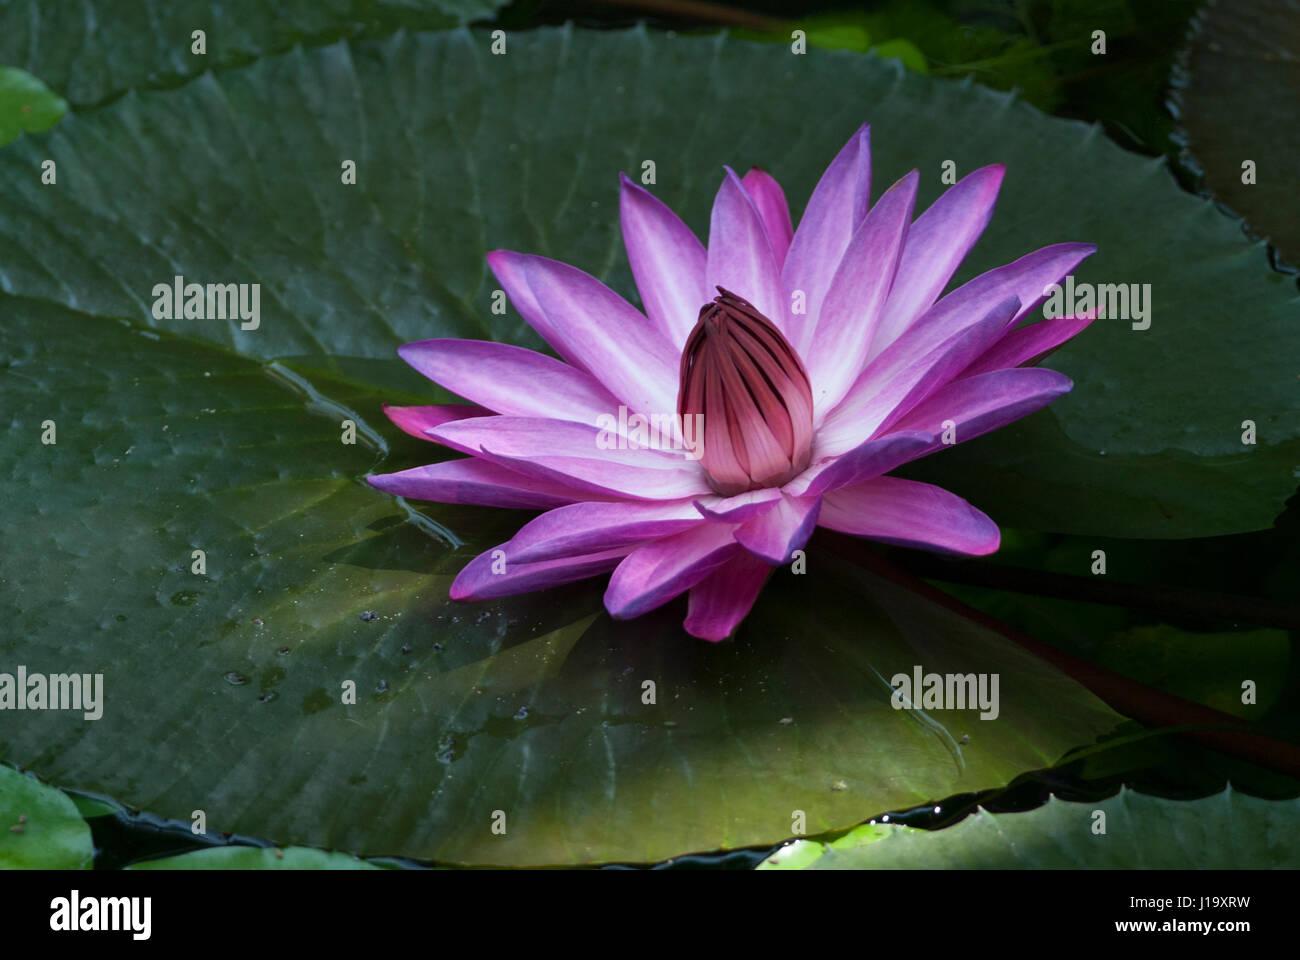 Brazilian water lily stock photos brazilian water lily stock the deep pink flower of a tropical brazilian water lily sitting on a leaf of the izmirmasajfo